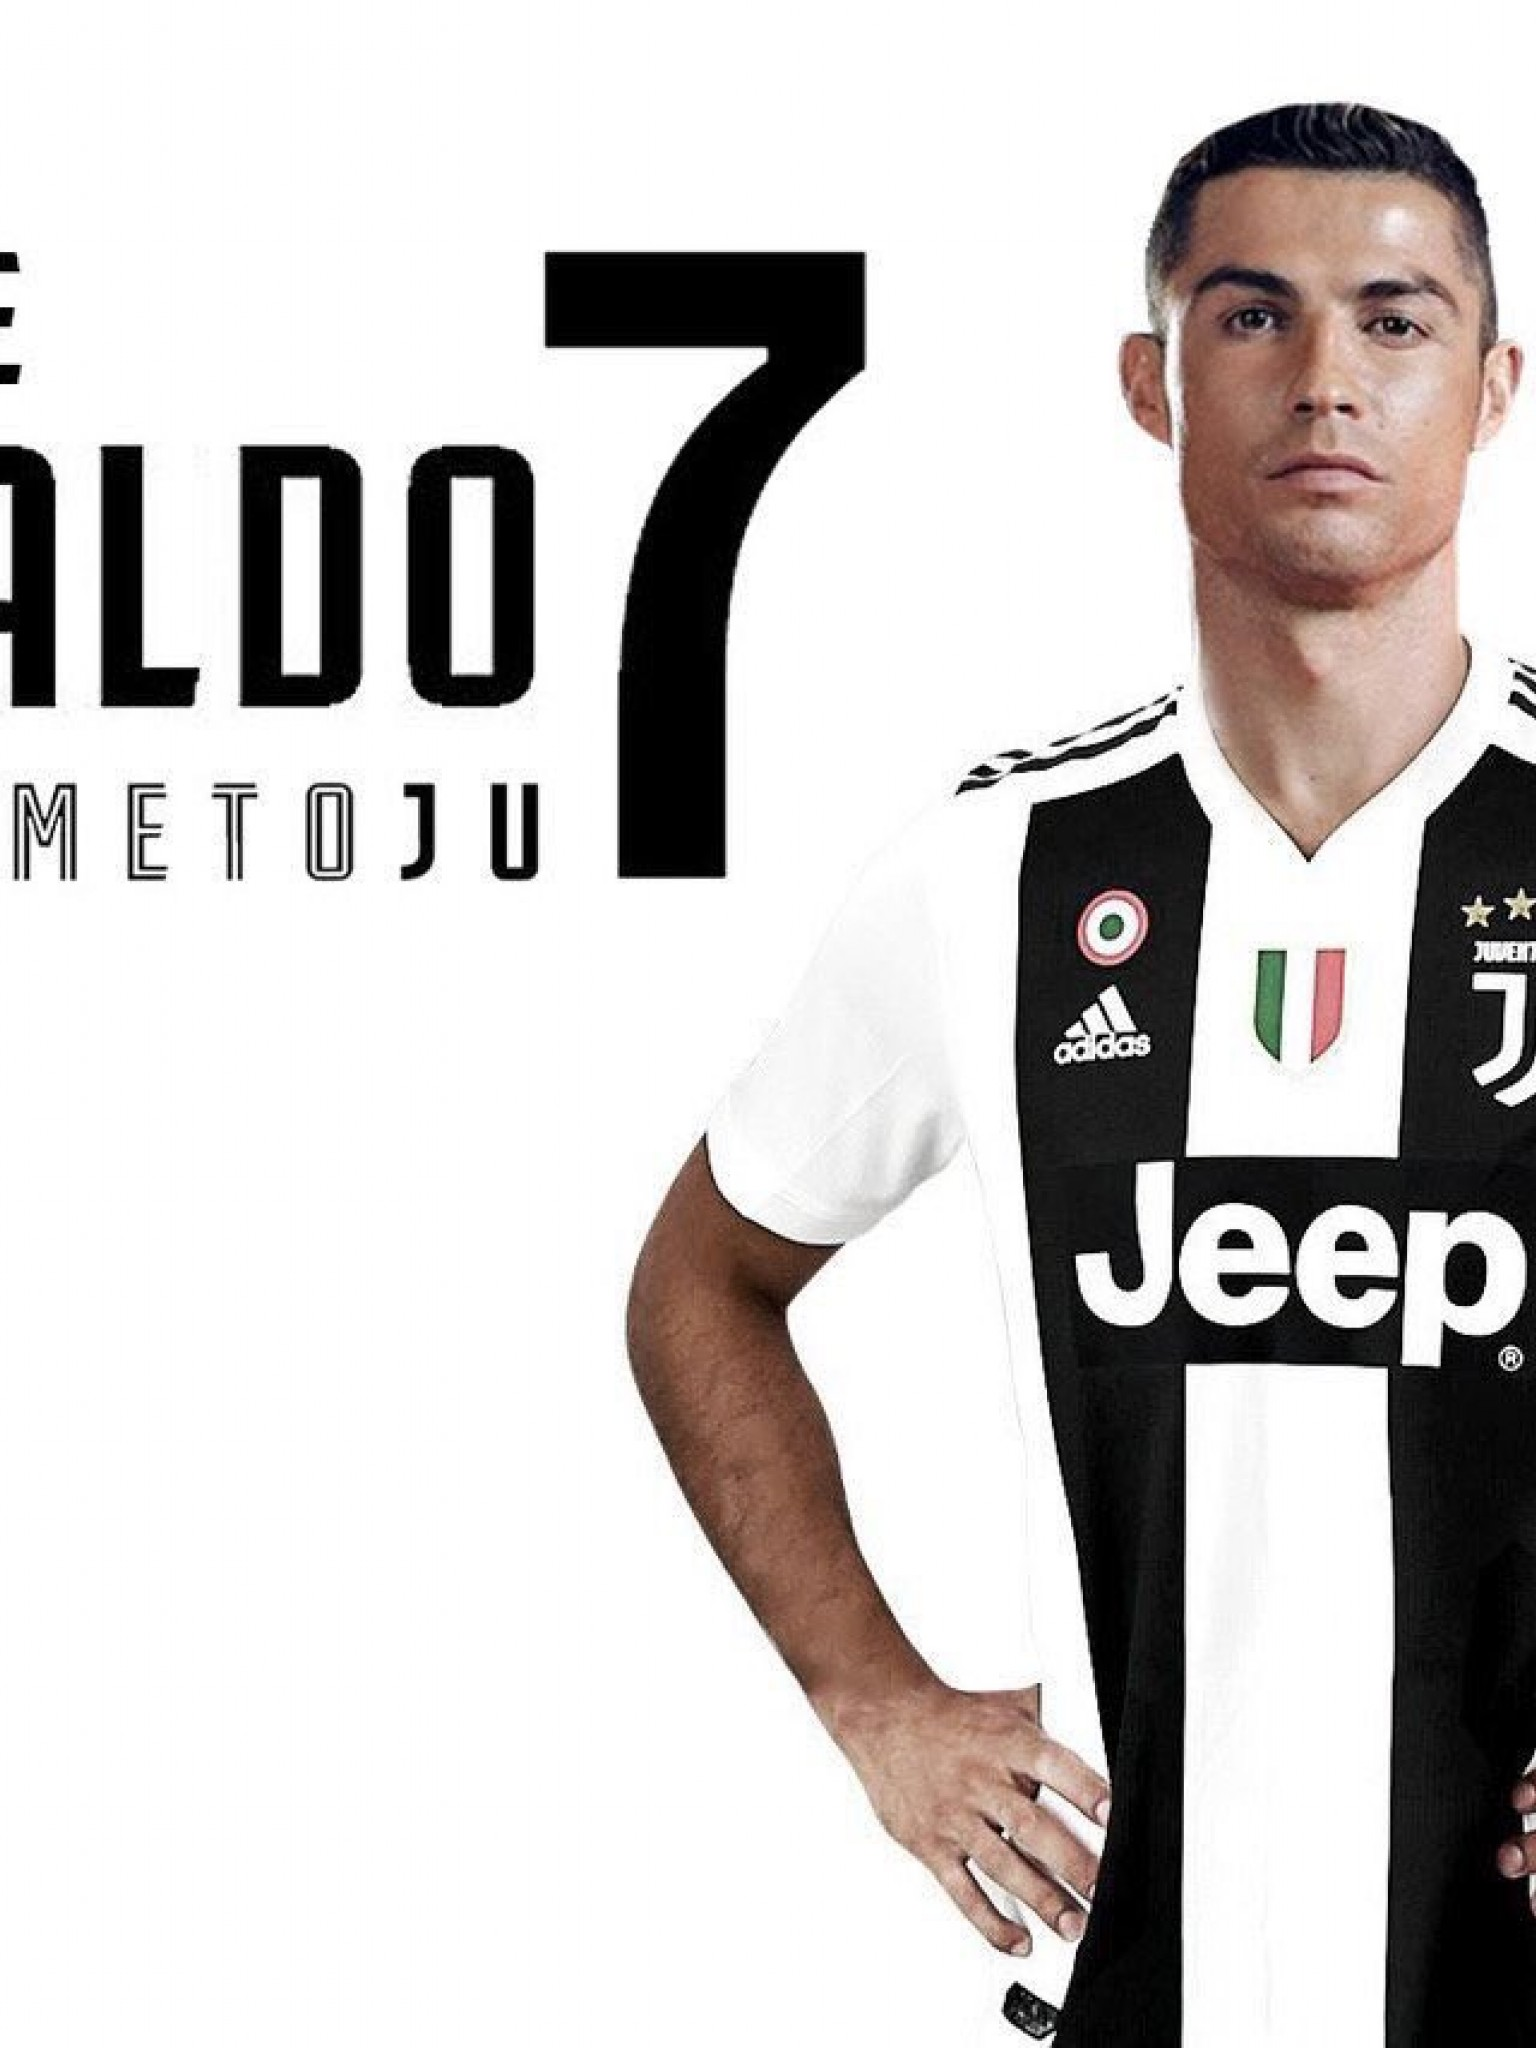 Cristiano Ronaldo Juventus Retina Ipad Hd Wallpaper Wallpapers Net